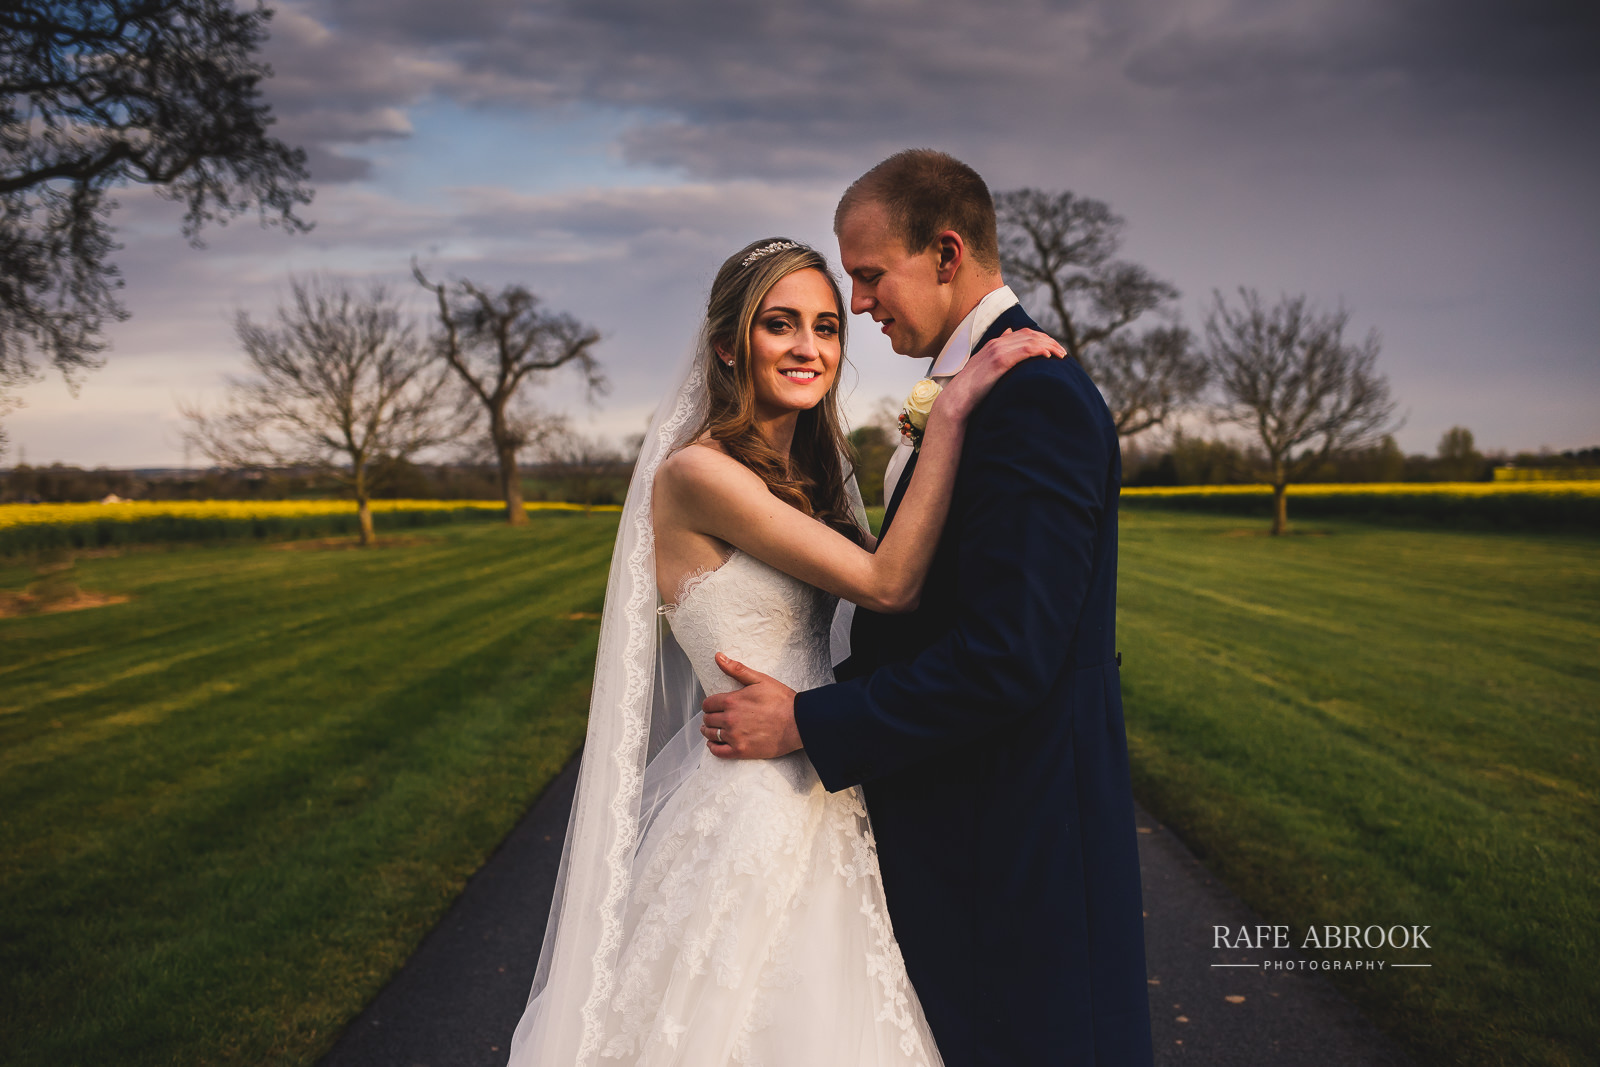 bassmead manor barns wedding st neots cambridgeshire hertfordshire wedding photographer rafe abrook-1713.jpg